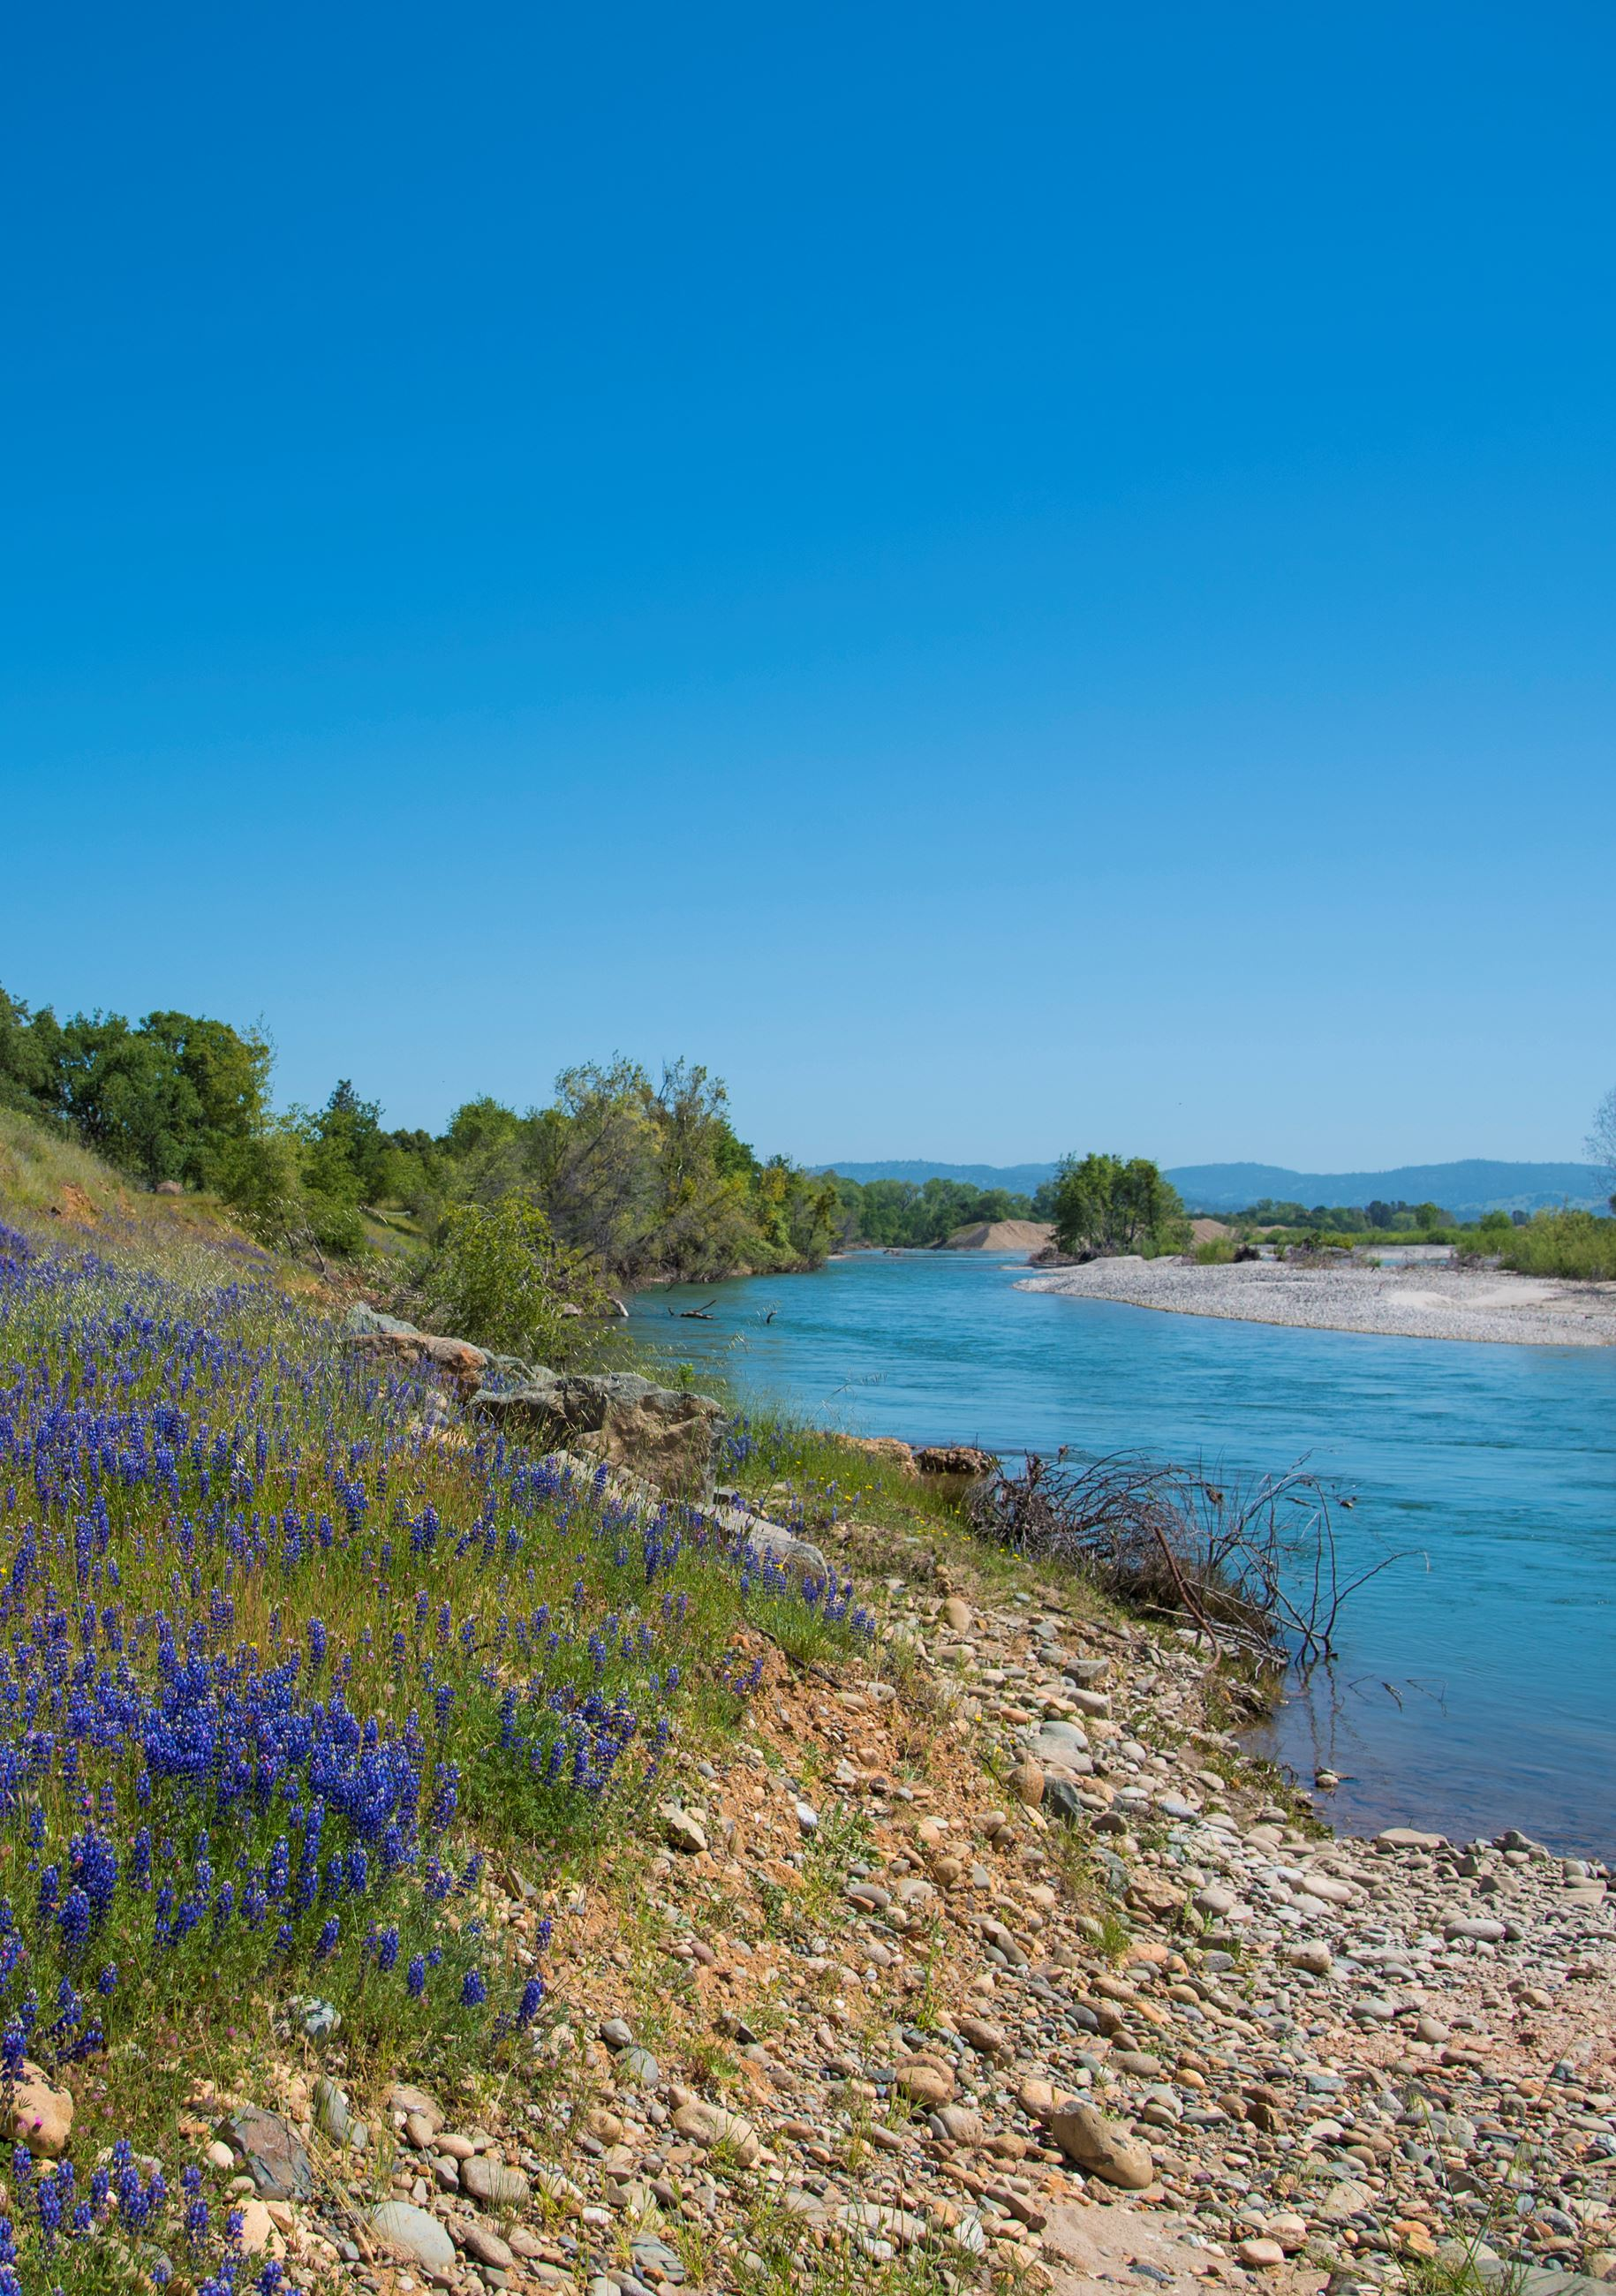 Lower Yuba River with lupines on the bank